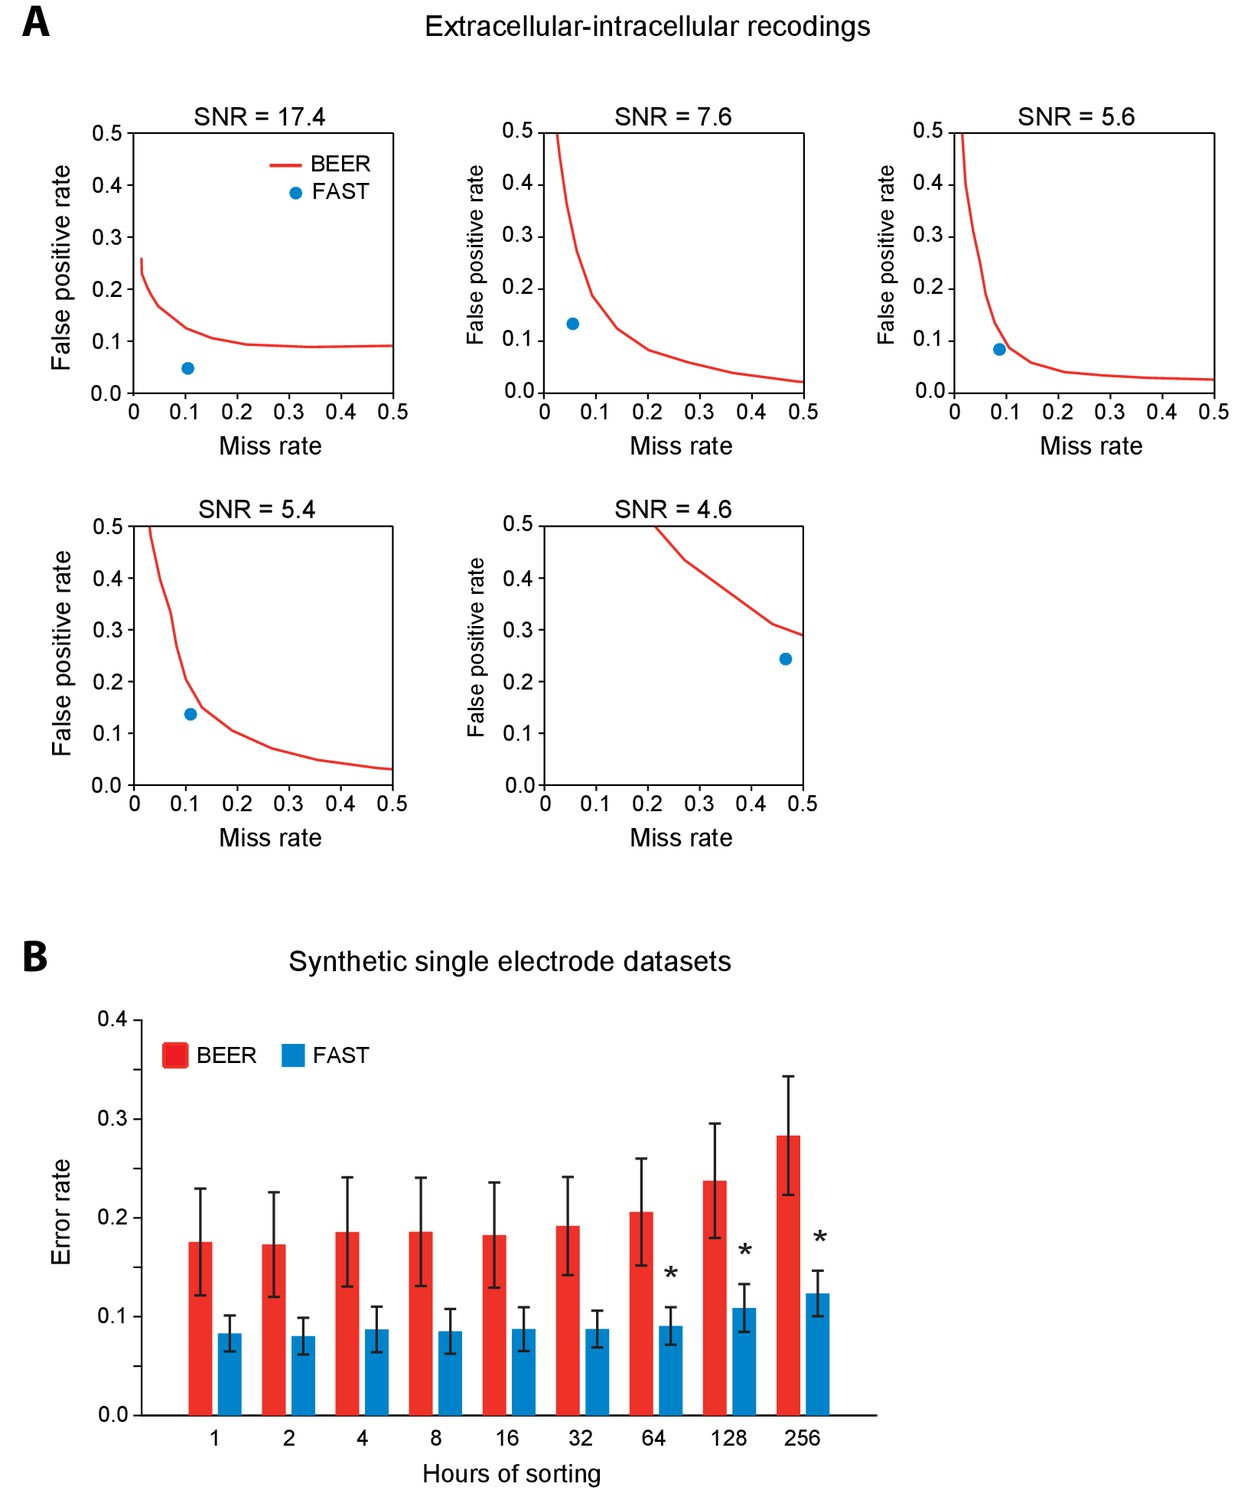 Automated Long Term Recording And Analysis Of Neural Activity In The 25l Motor Data Sensor Heating Oxygen Circuit Diagram Validation Spike Sorting Performance Fast Using Ground Truth Extracellular Intracellular Recordings Synthetic Single Electrode Datasets